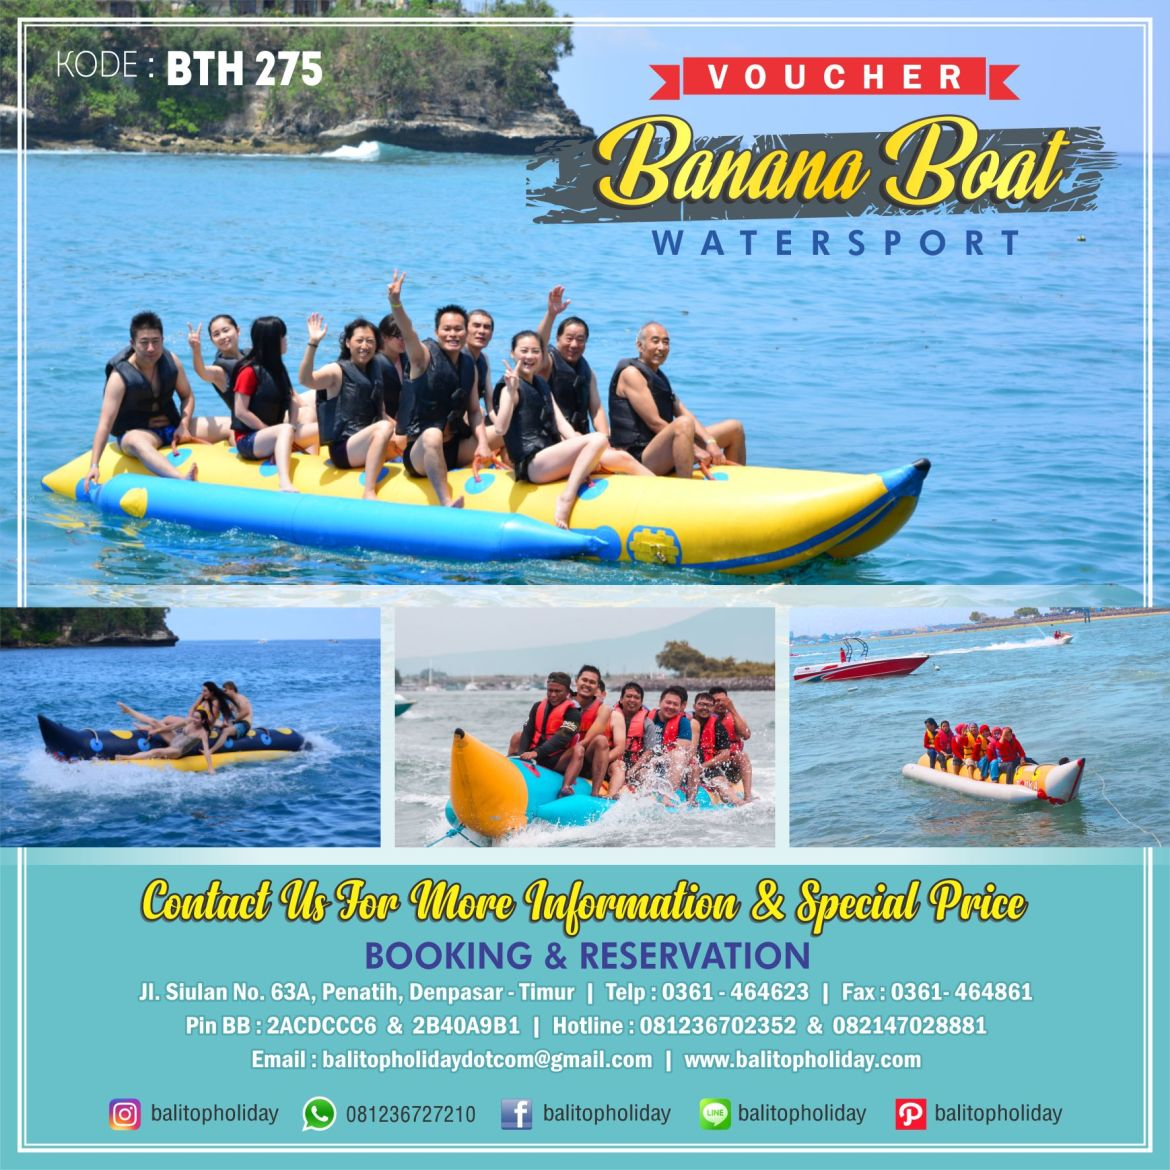 Voucher Banana Boat